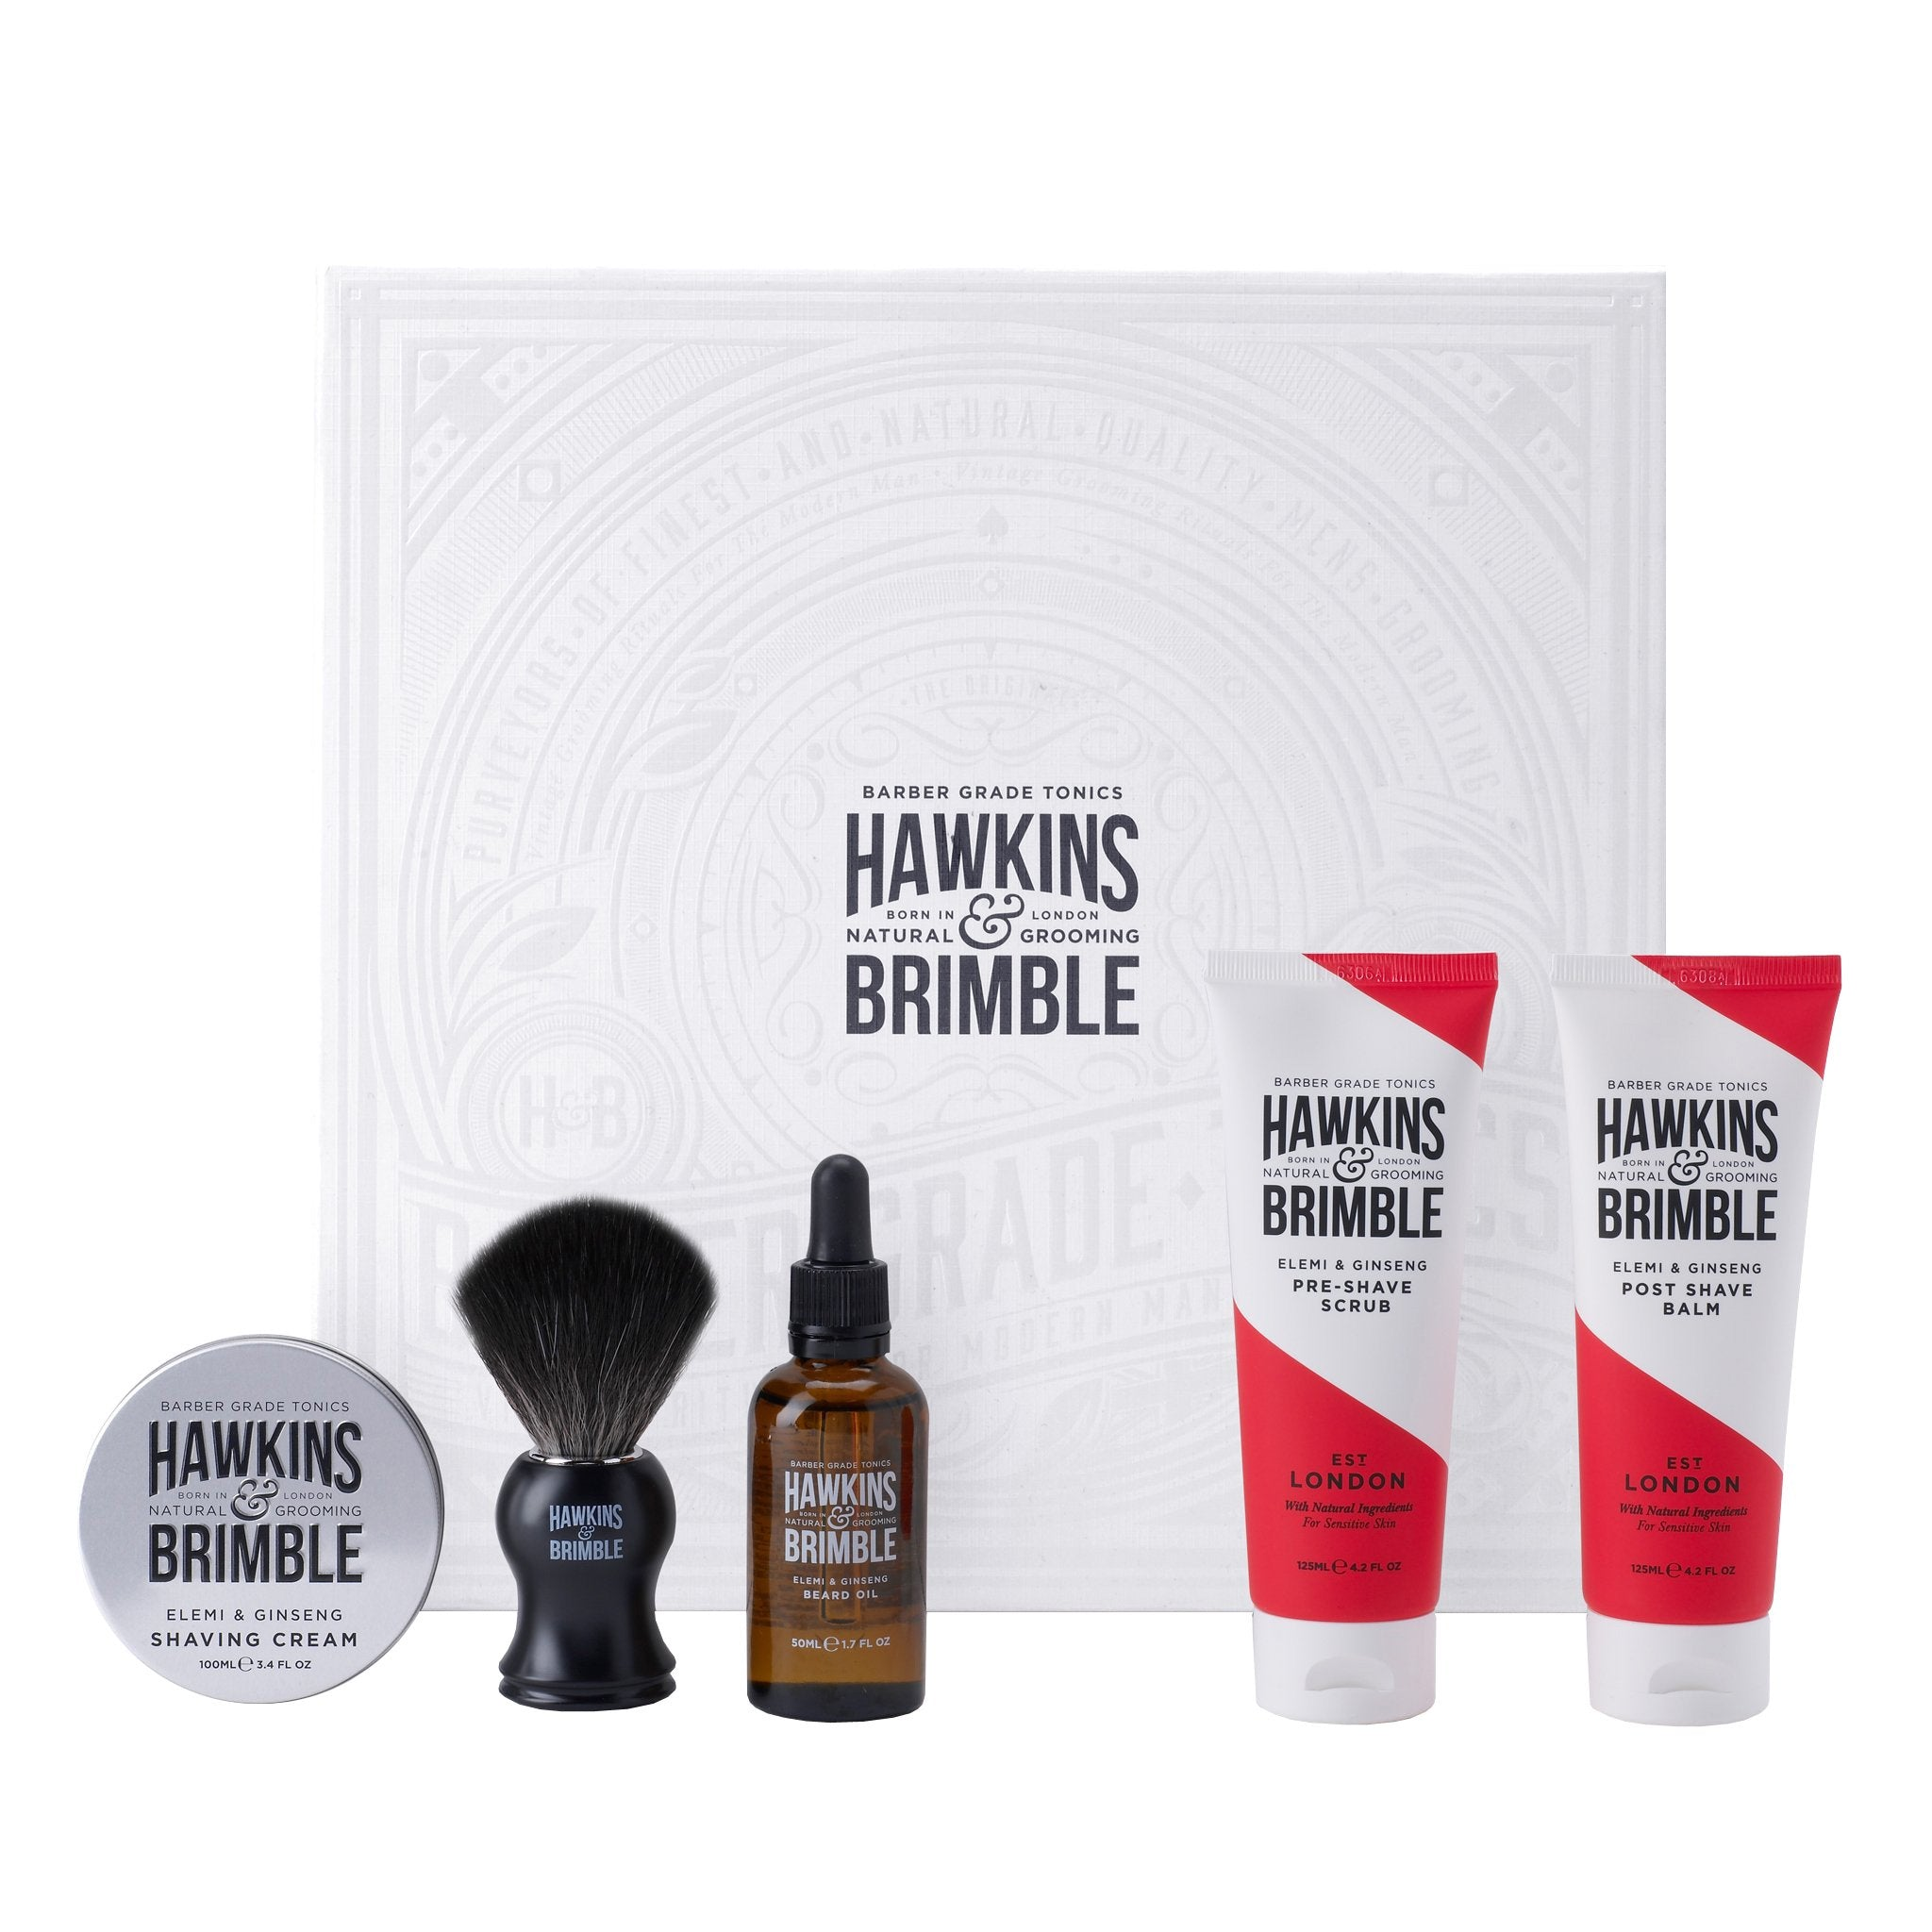 Hawkins and Brimble Limited Edition Gift Set